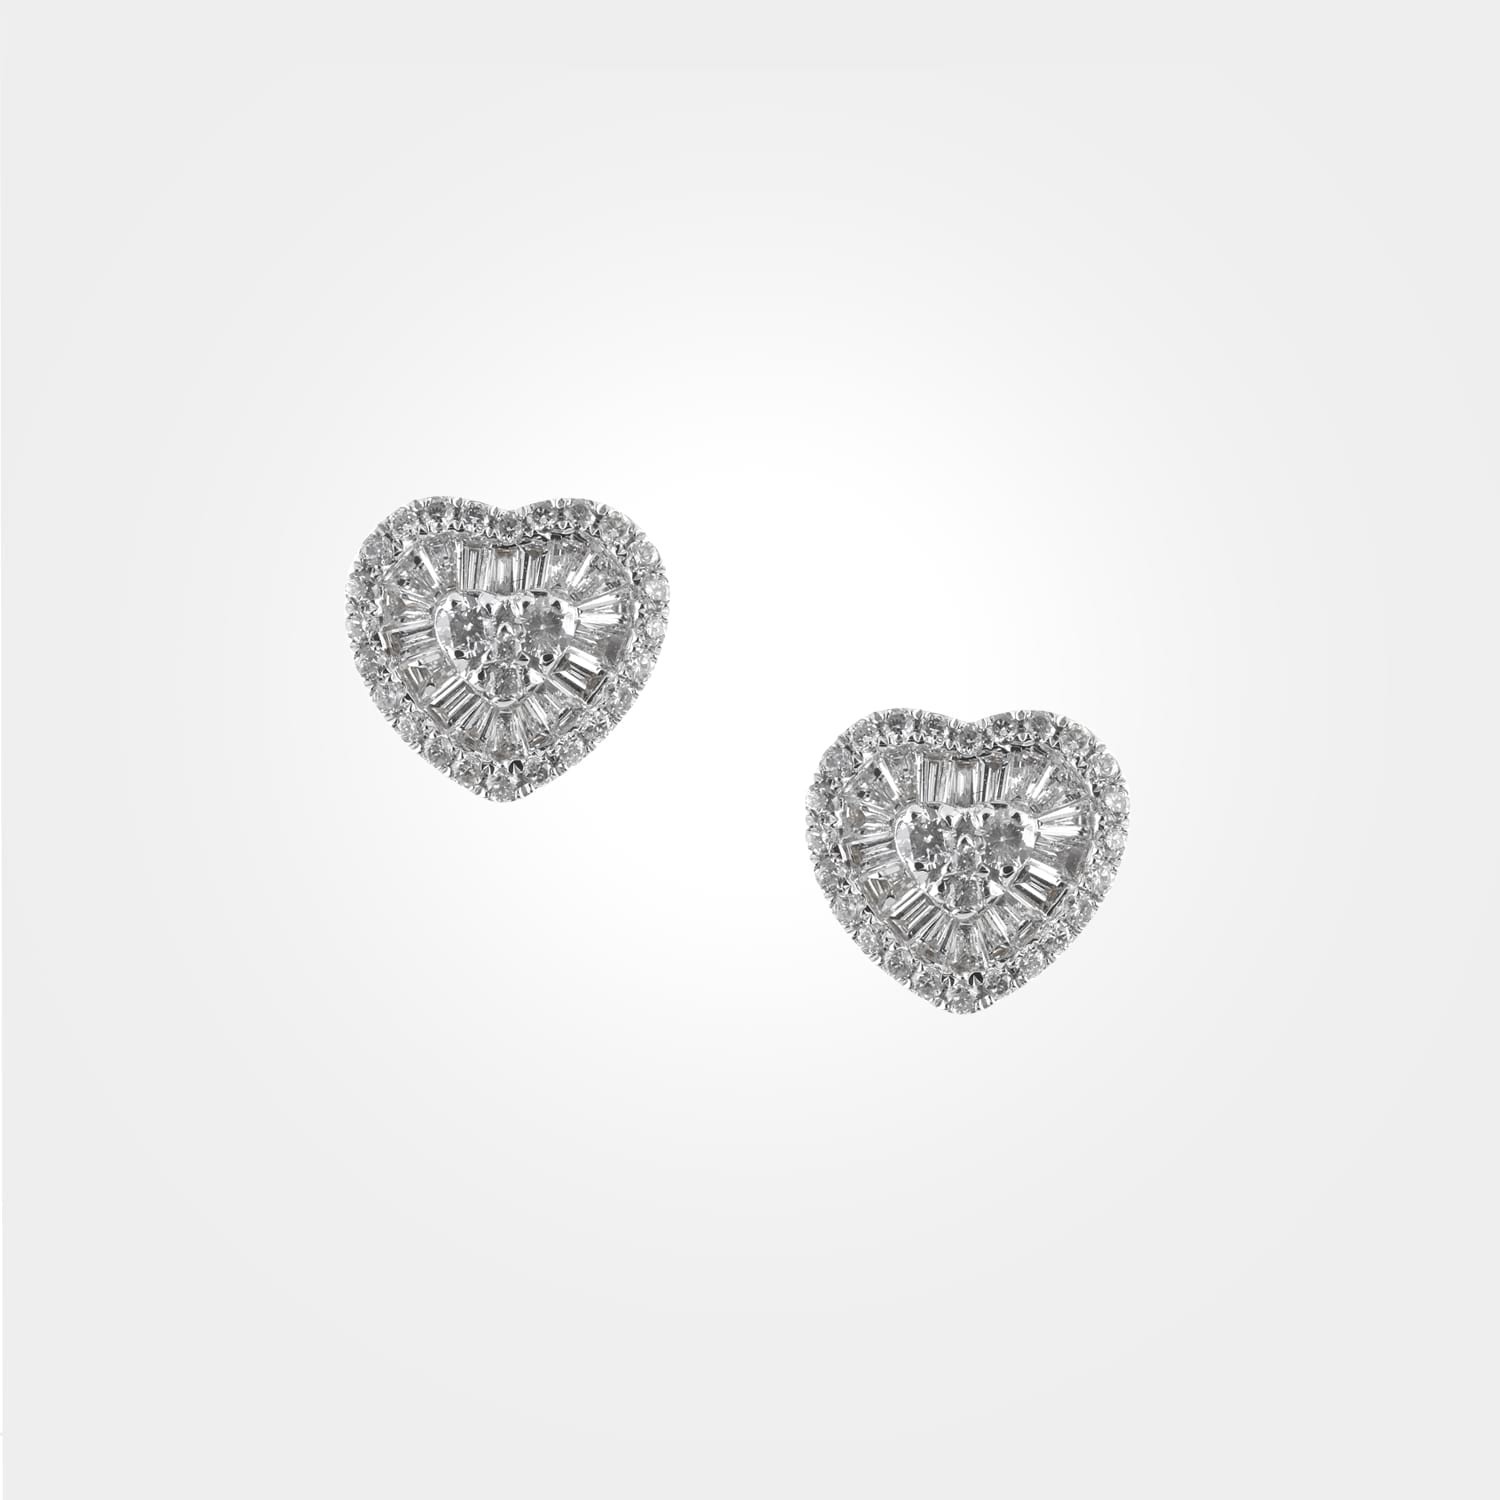 Heart-shaped diamond earrings